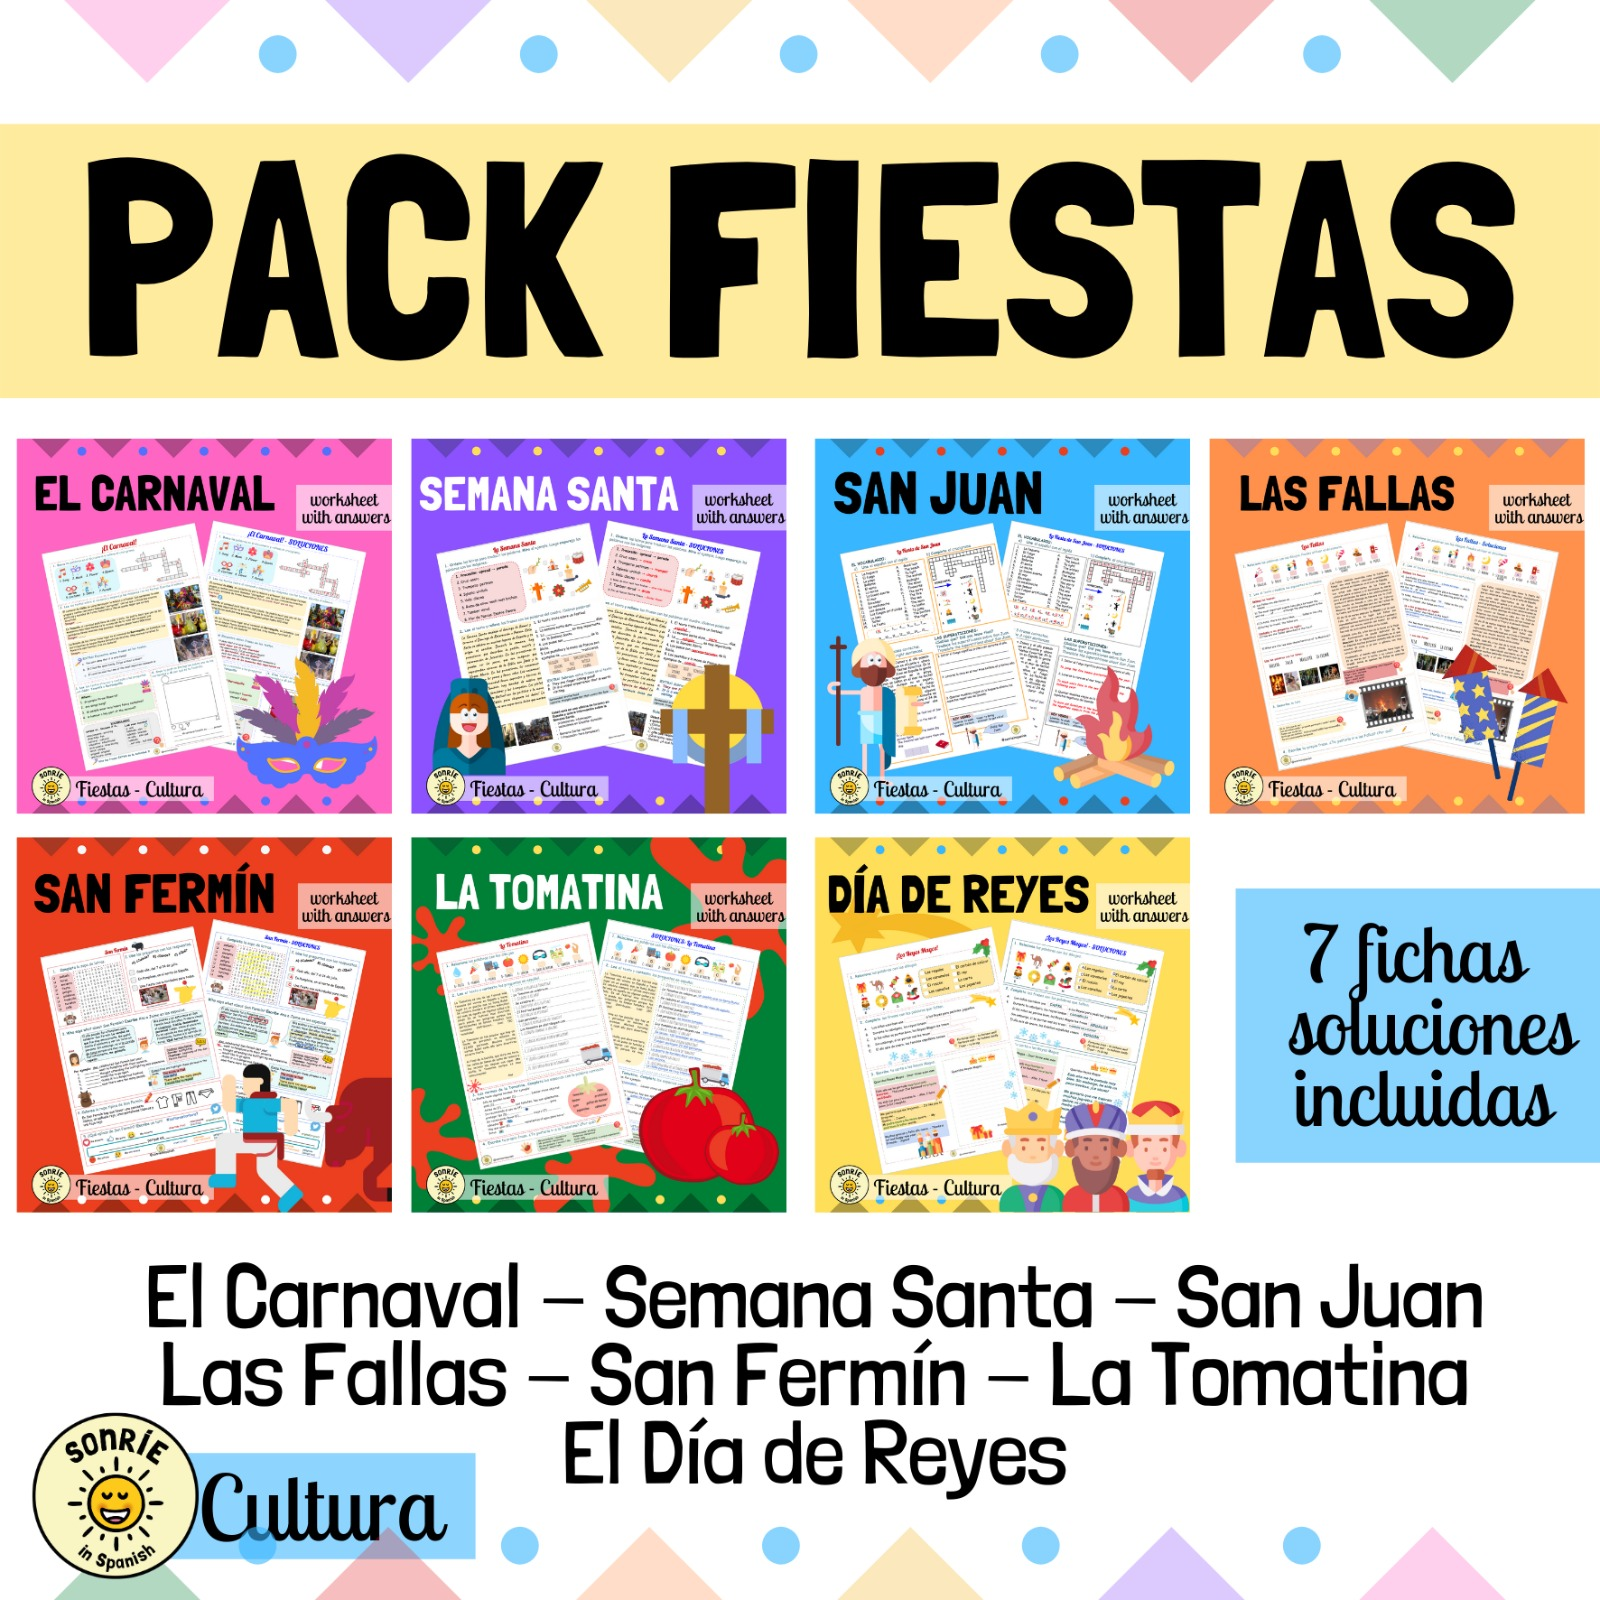 Pack festivales Spanish festivals and traditions worksheets with answers